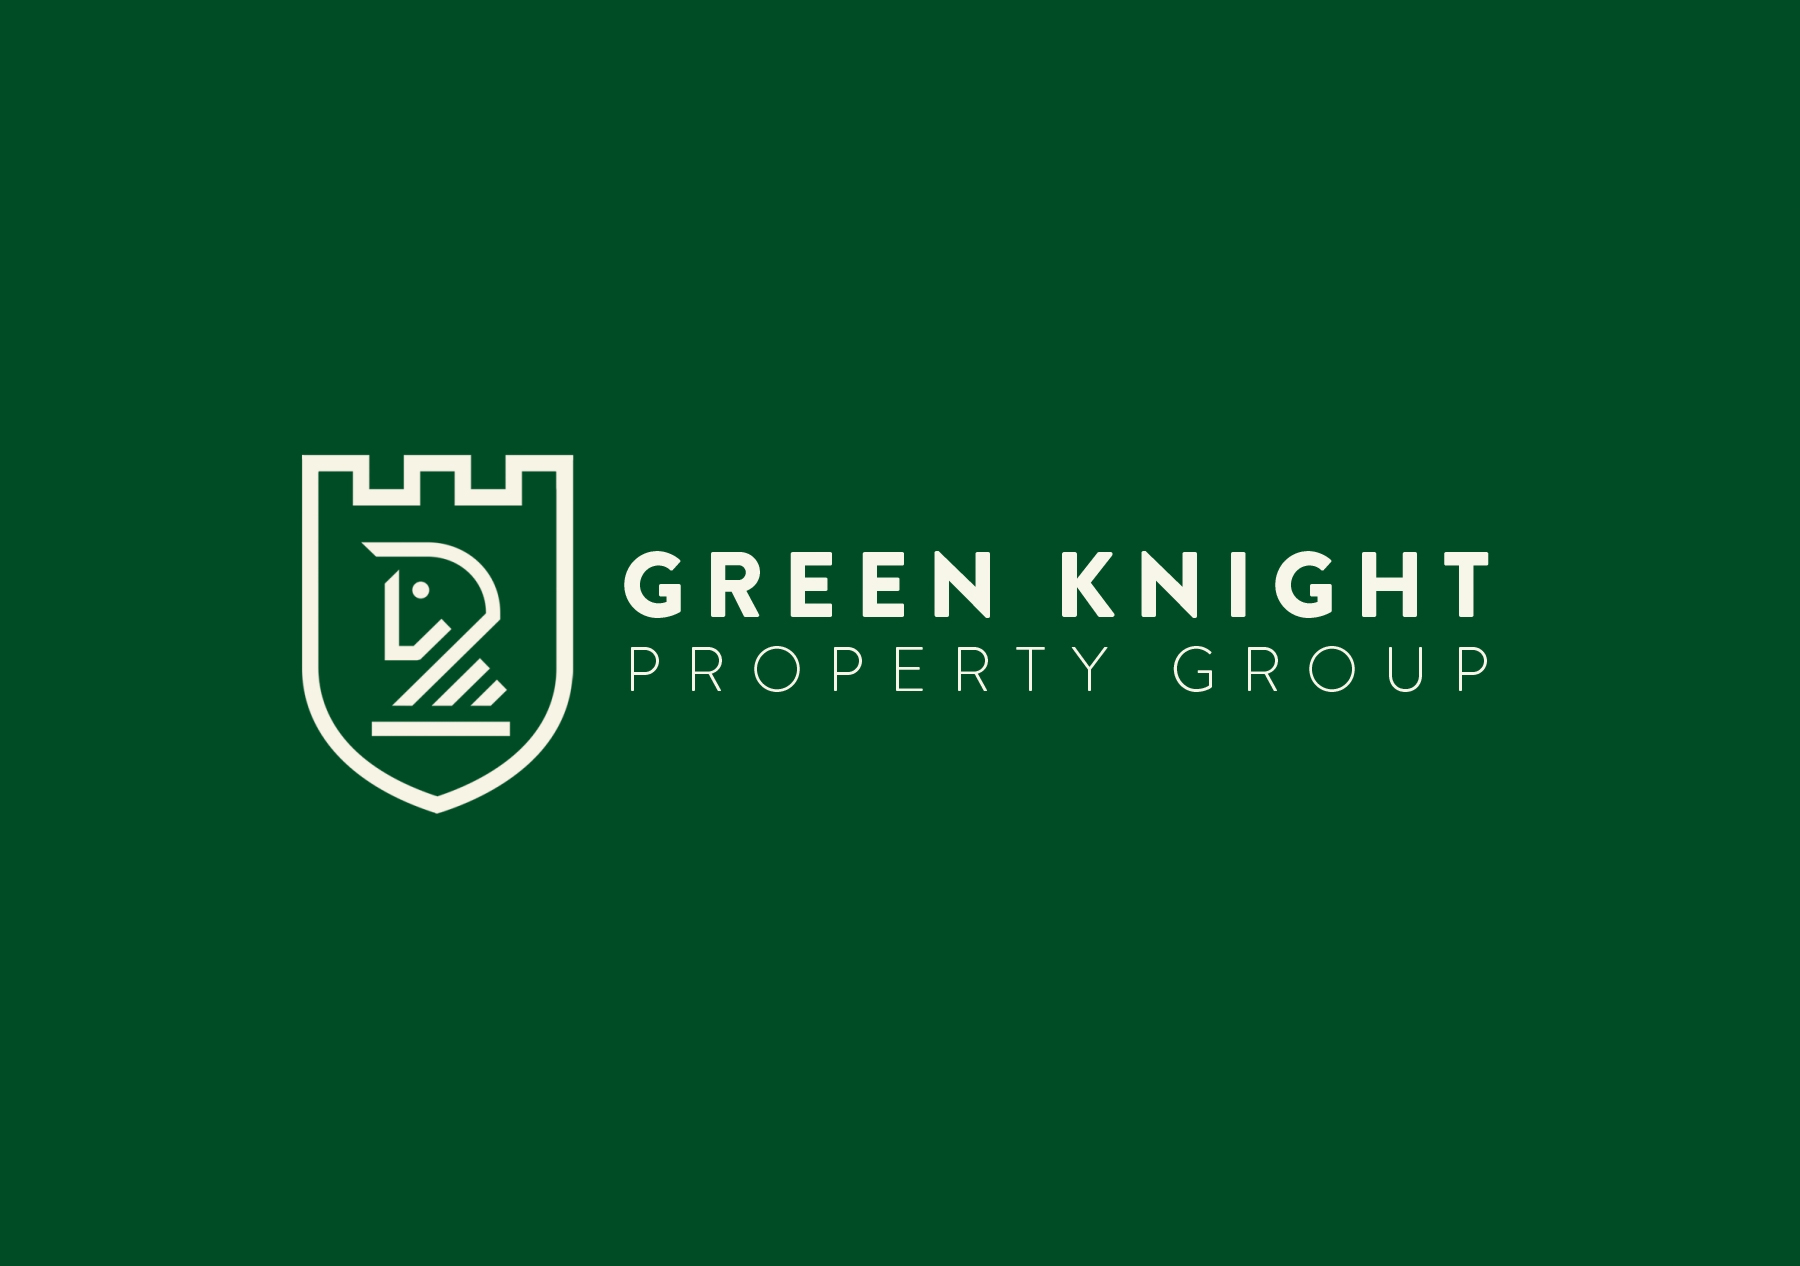 Cover image: Green Knight Property Group